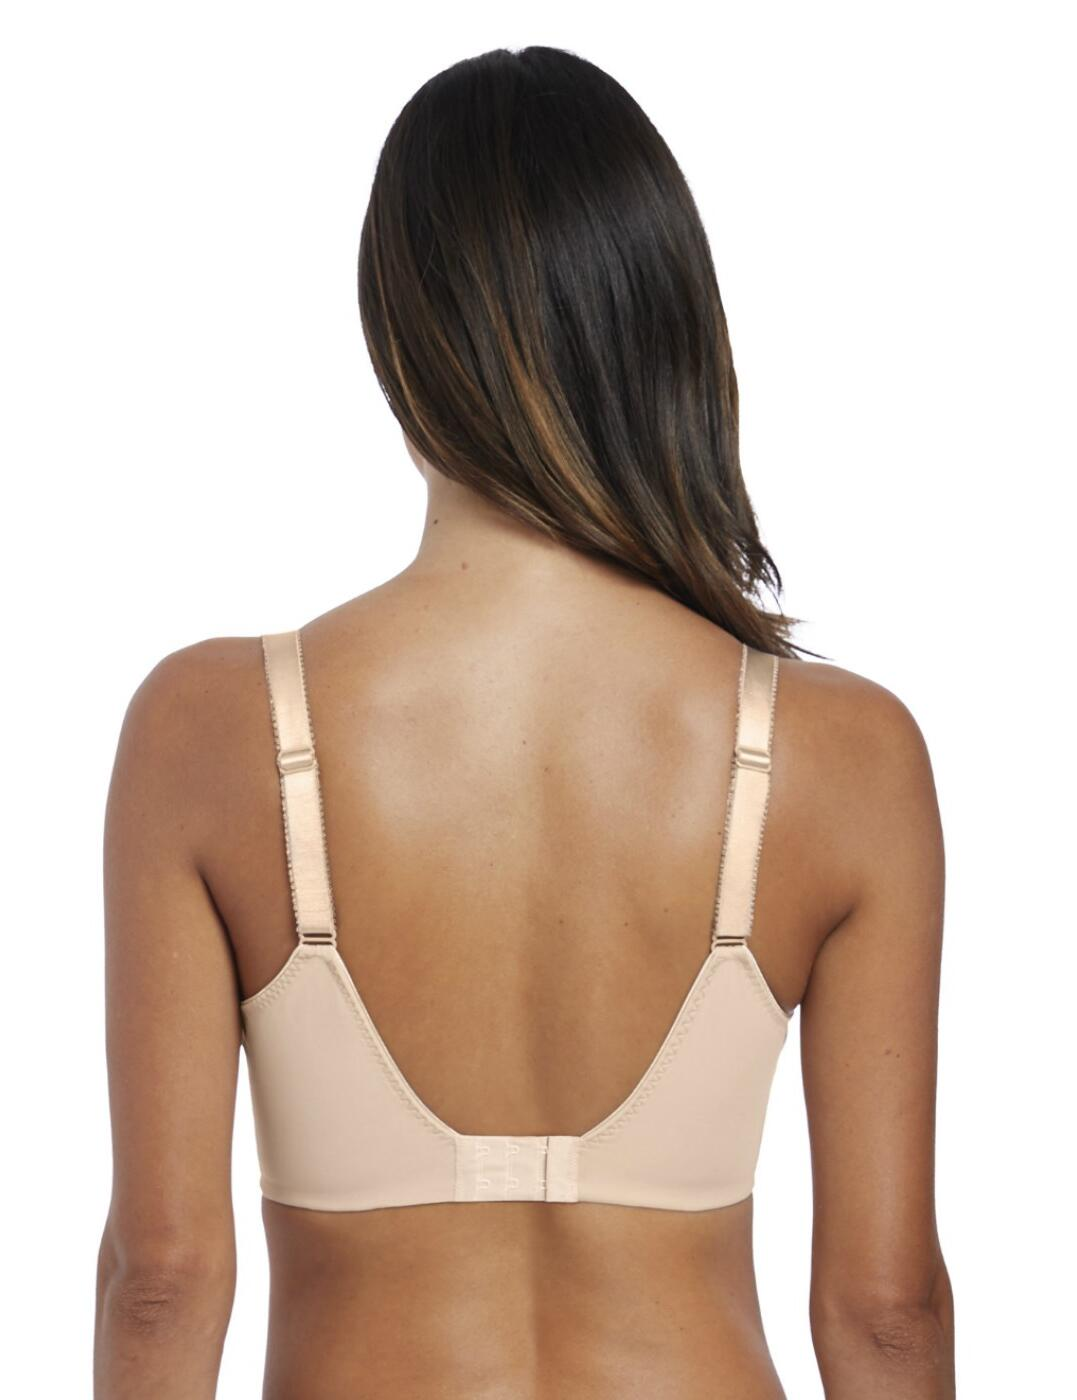 FANTASIE Illusion Underwired Side Support Bra Natural Beige Luxury Lingerie 2982